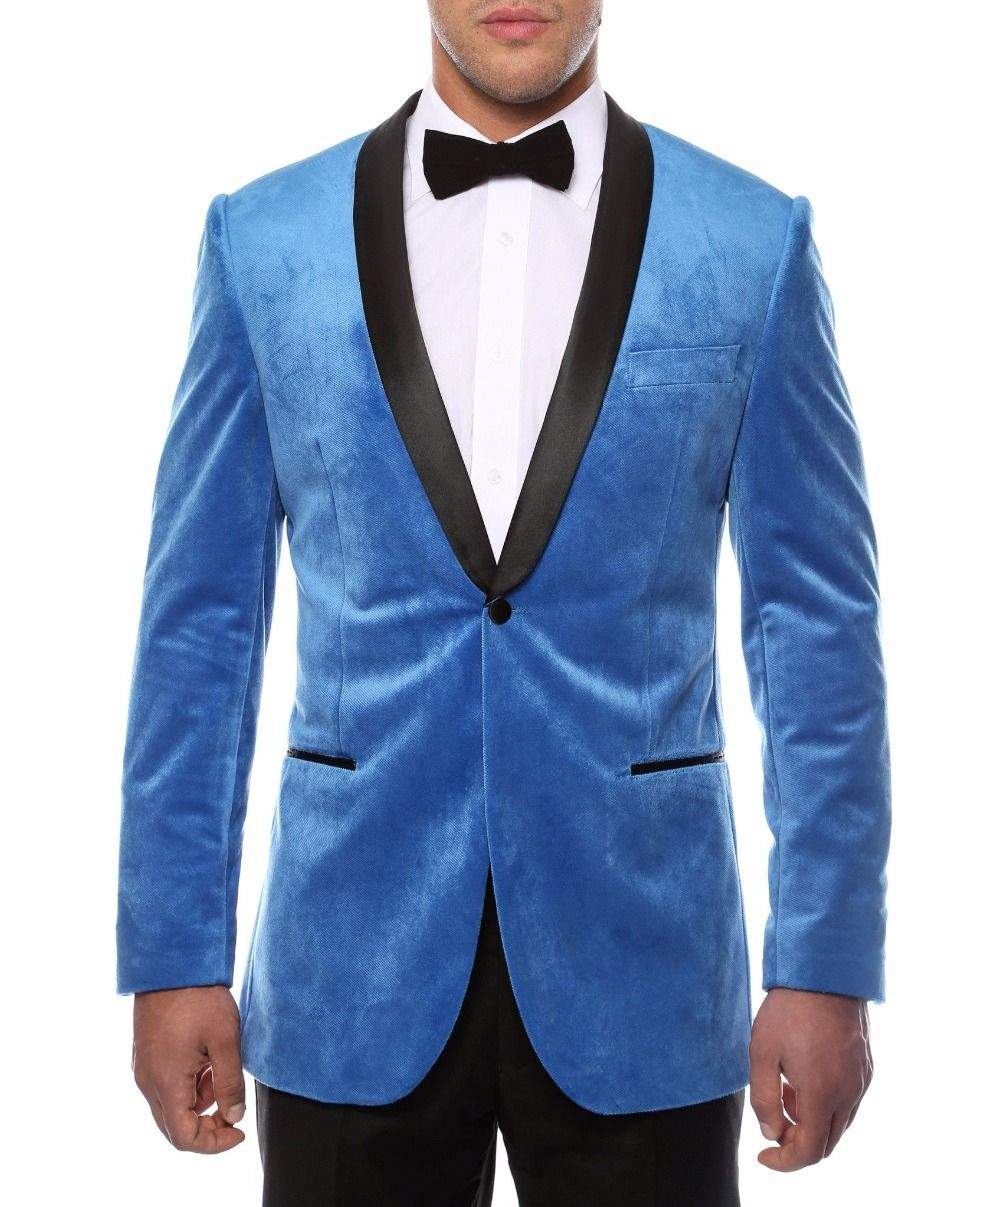 2018 Latest Coat Pant Designs Sky Blue Velvet Wedding Suits for Men ...